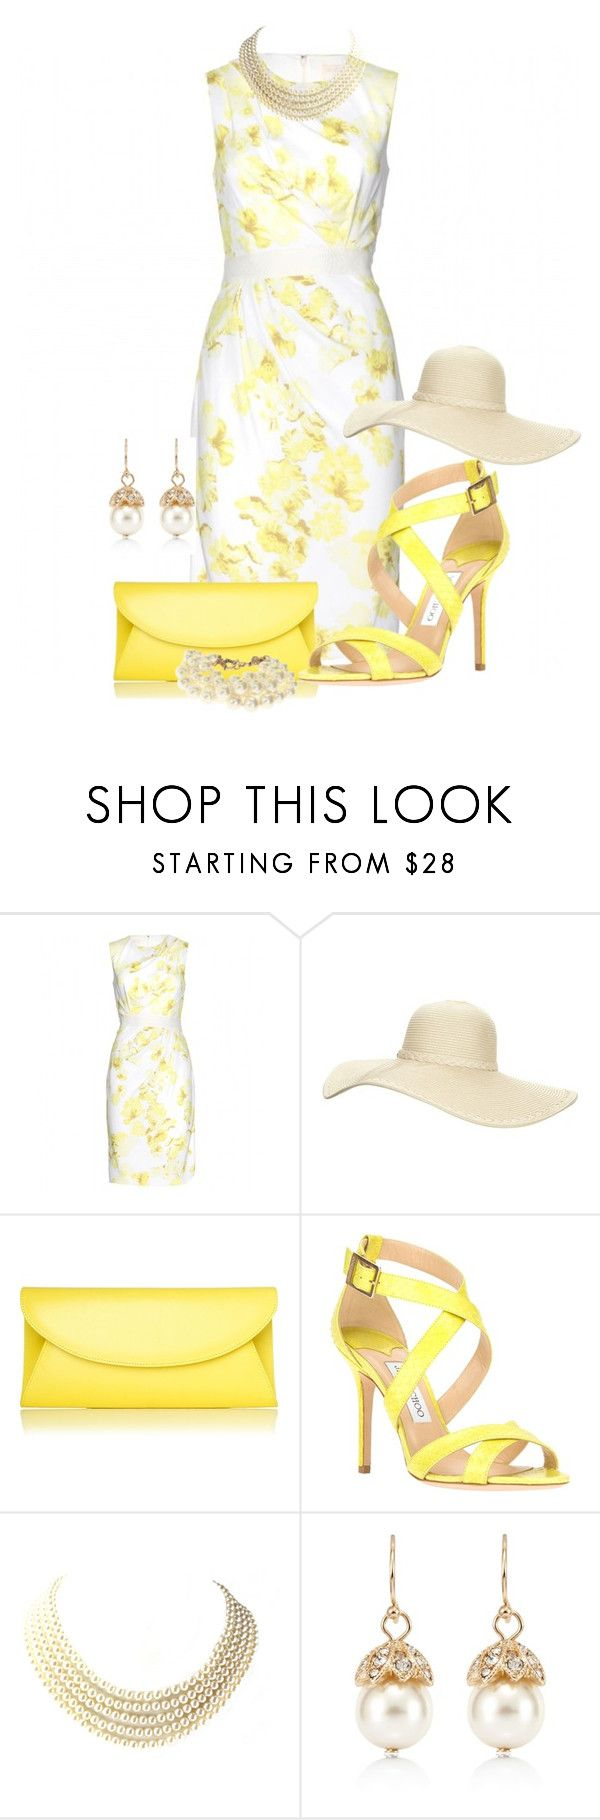 """""""Easter Yellow....Sunday Best Easter Contest"""" by natania-dydell ❤ liked on Polyvore featuring Giambattista Valli, Reger by Janet Reger, L.K.Bennett, Jimmy Choo, White House Black Market, J.Crew, women's clothing, women's fashion, women and female"""